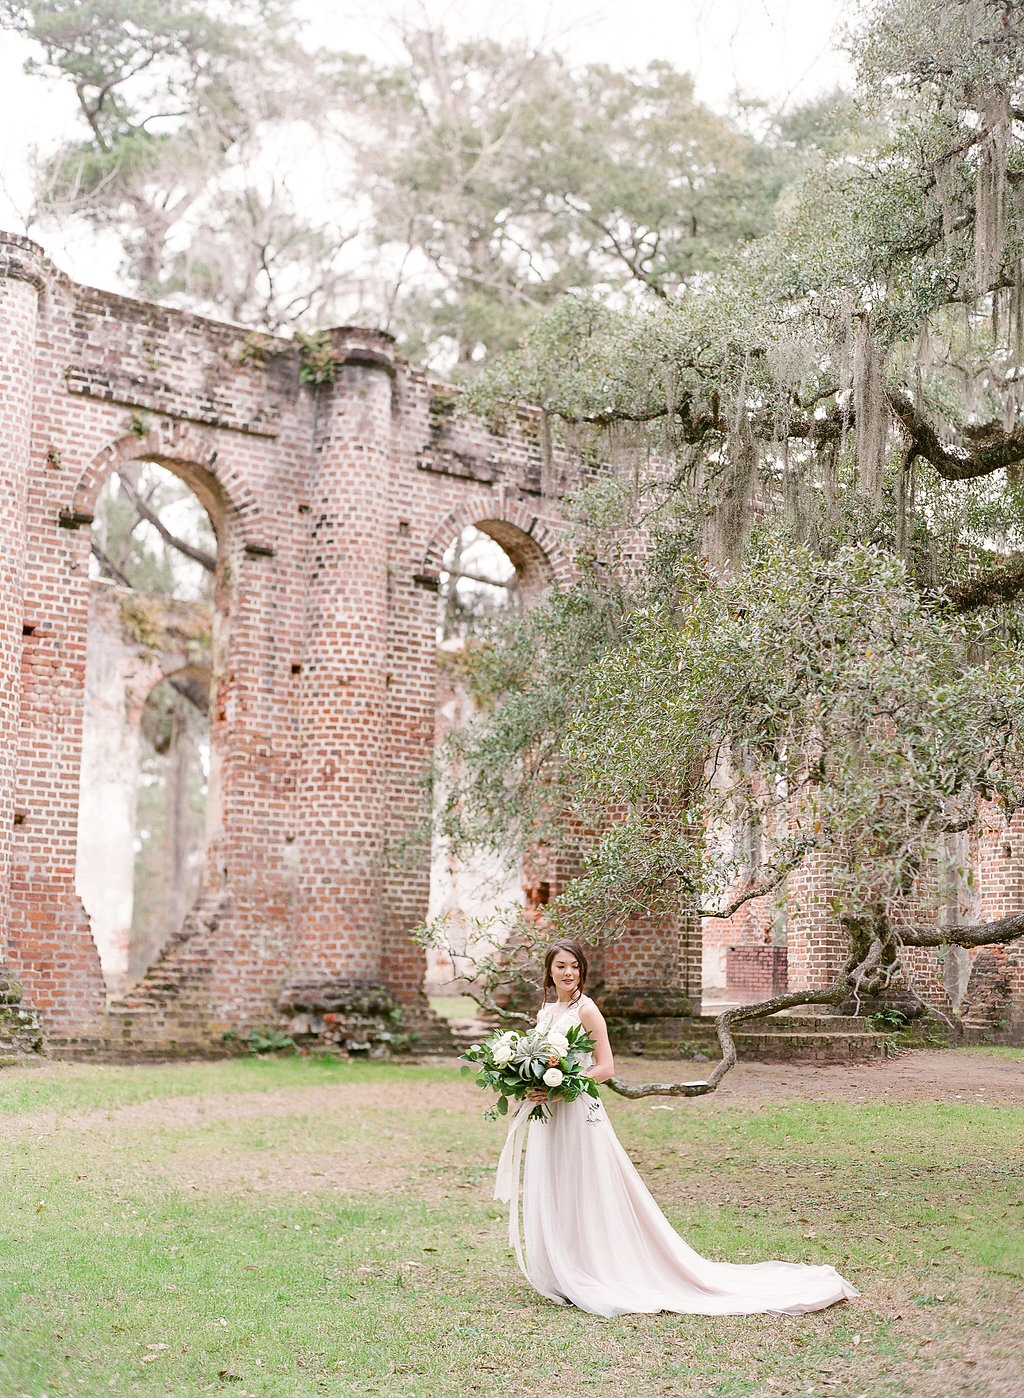 the-happy-bloom-photography-ti-adora-7553-ivory-and-beau-bridal-boutique-savannah-wedding-dresses-old-sheldon-ruins-savannah-wedding-planner-savannah-event-designer-savannah-weddings-savannah-film-photographer-savannah-photography-workshop-18.jpg